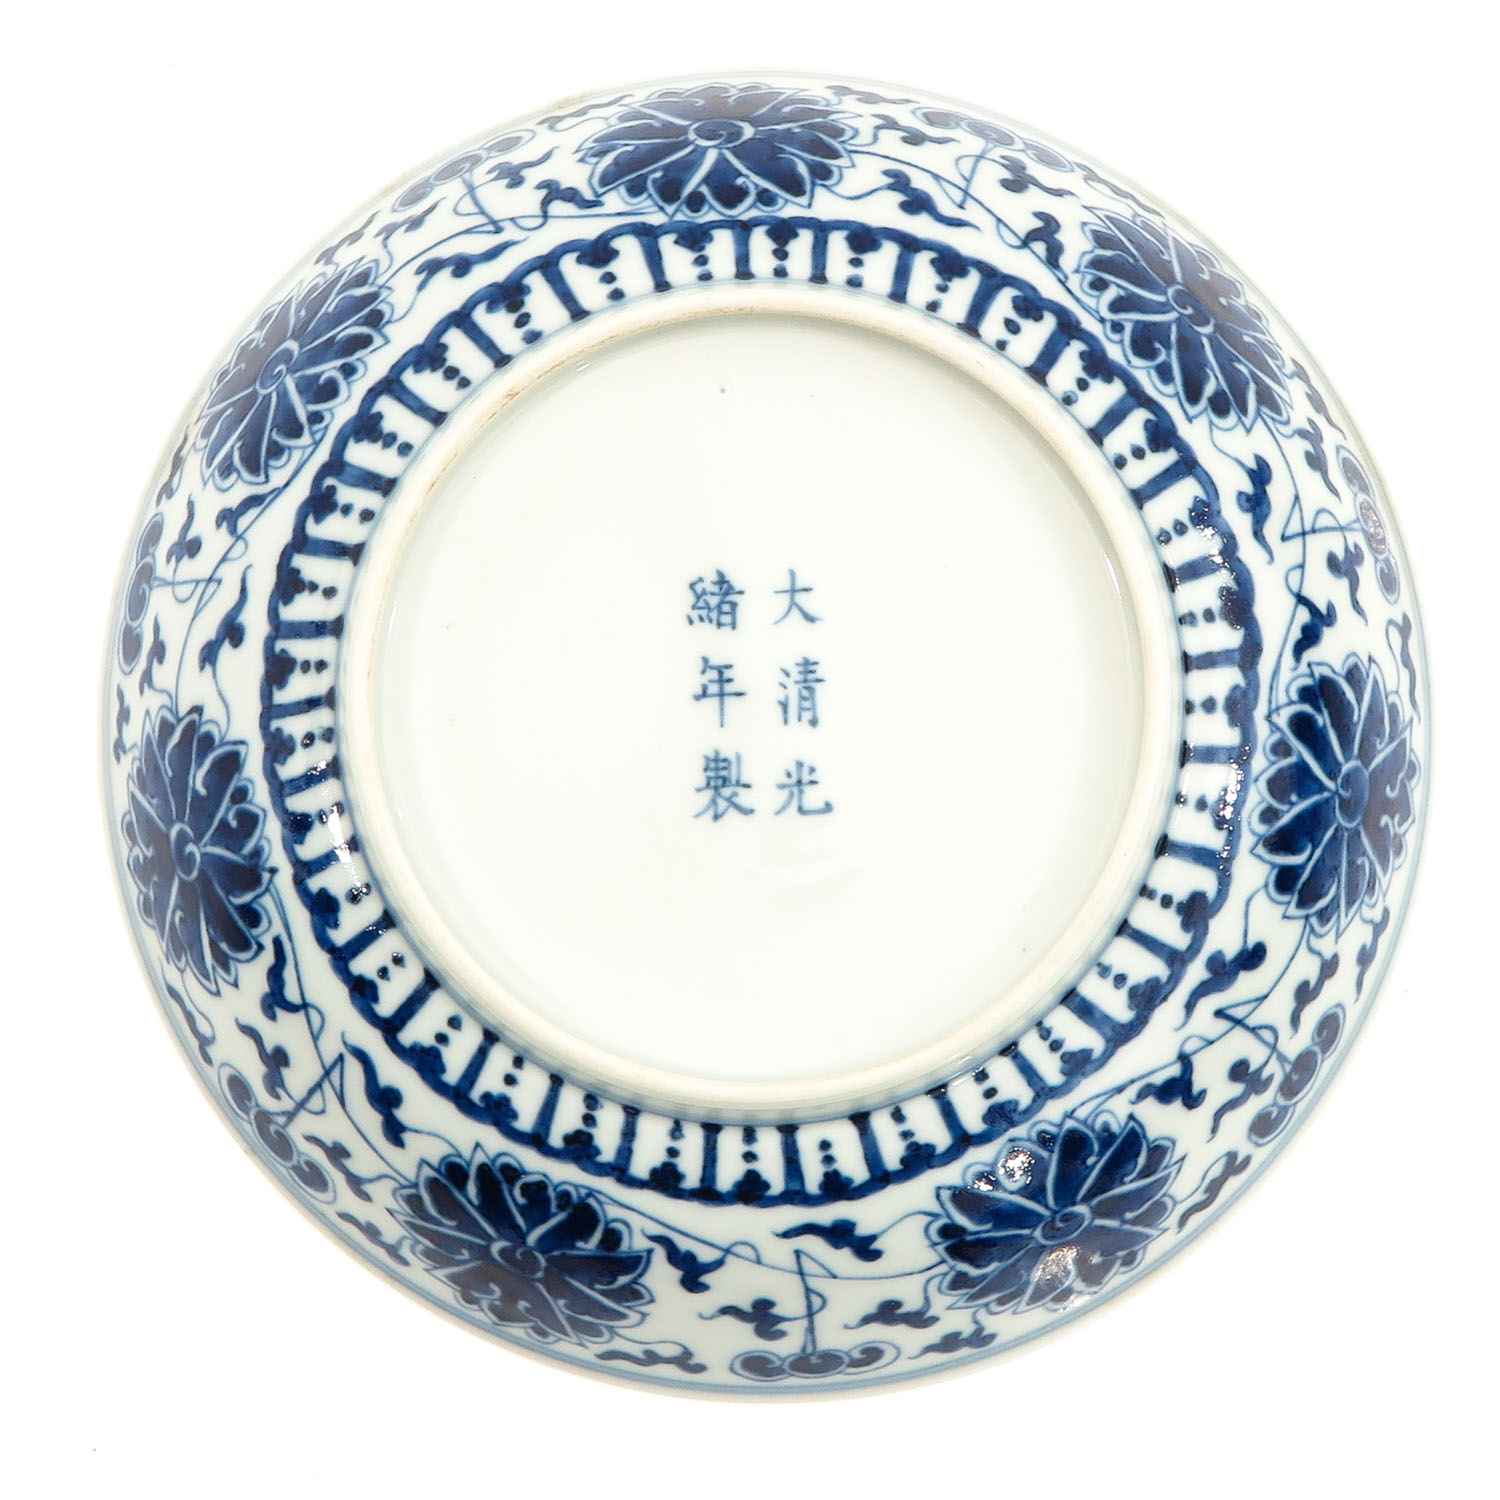 A Blue and White Dish - Image 2 of 6